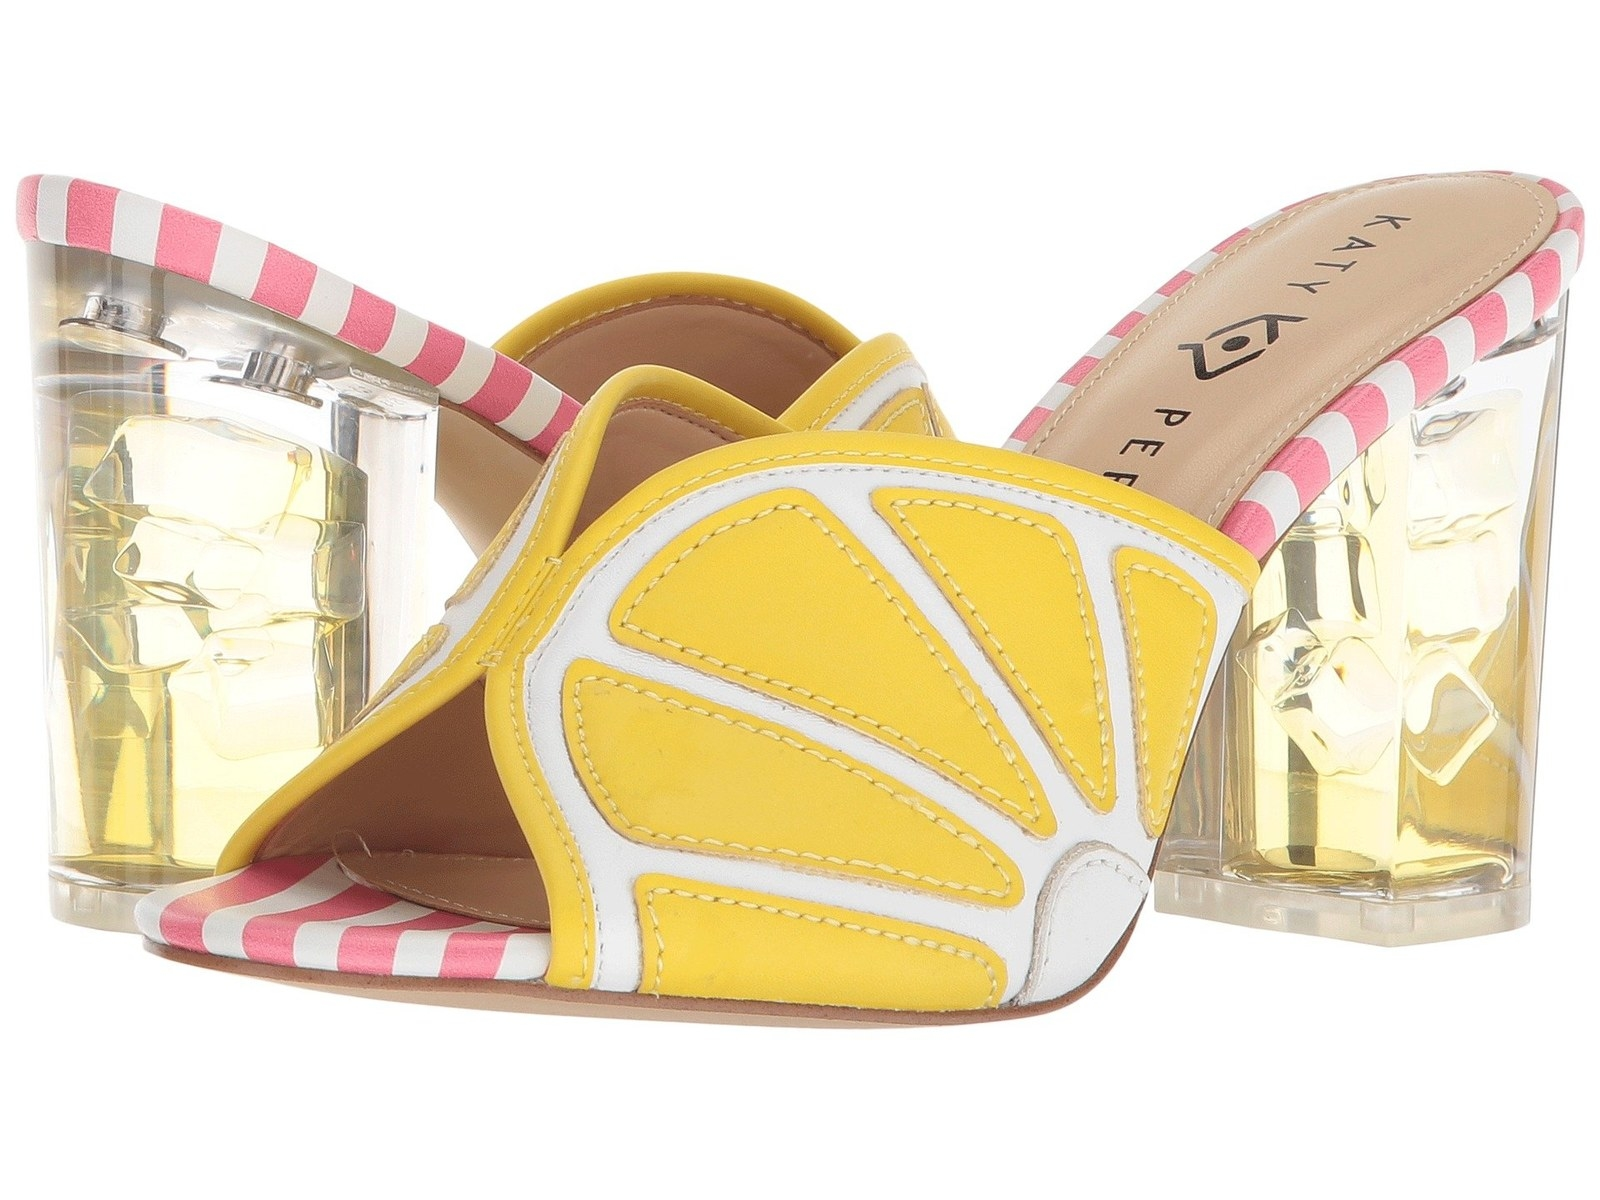 2867e1ec26ac2c 4. Katy Perry lemonade platform sandals or mule sandals just begging to be  featured on your Instagram!